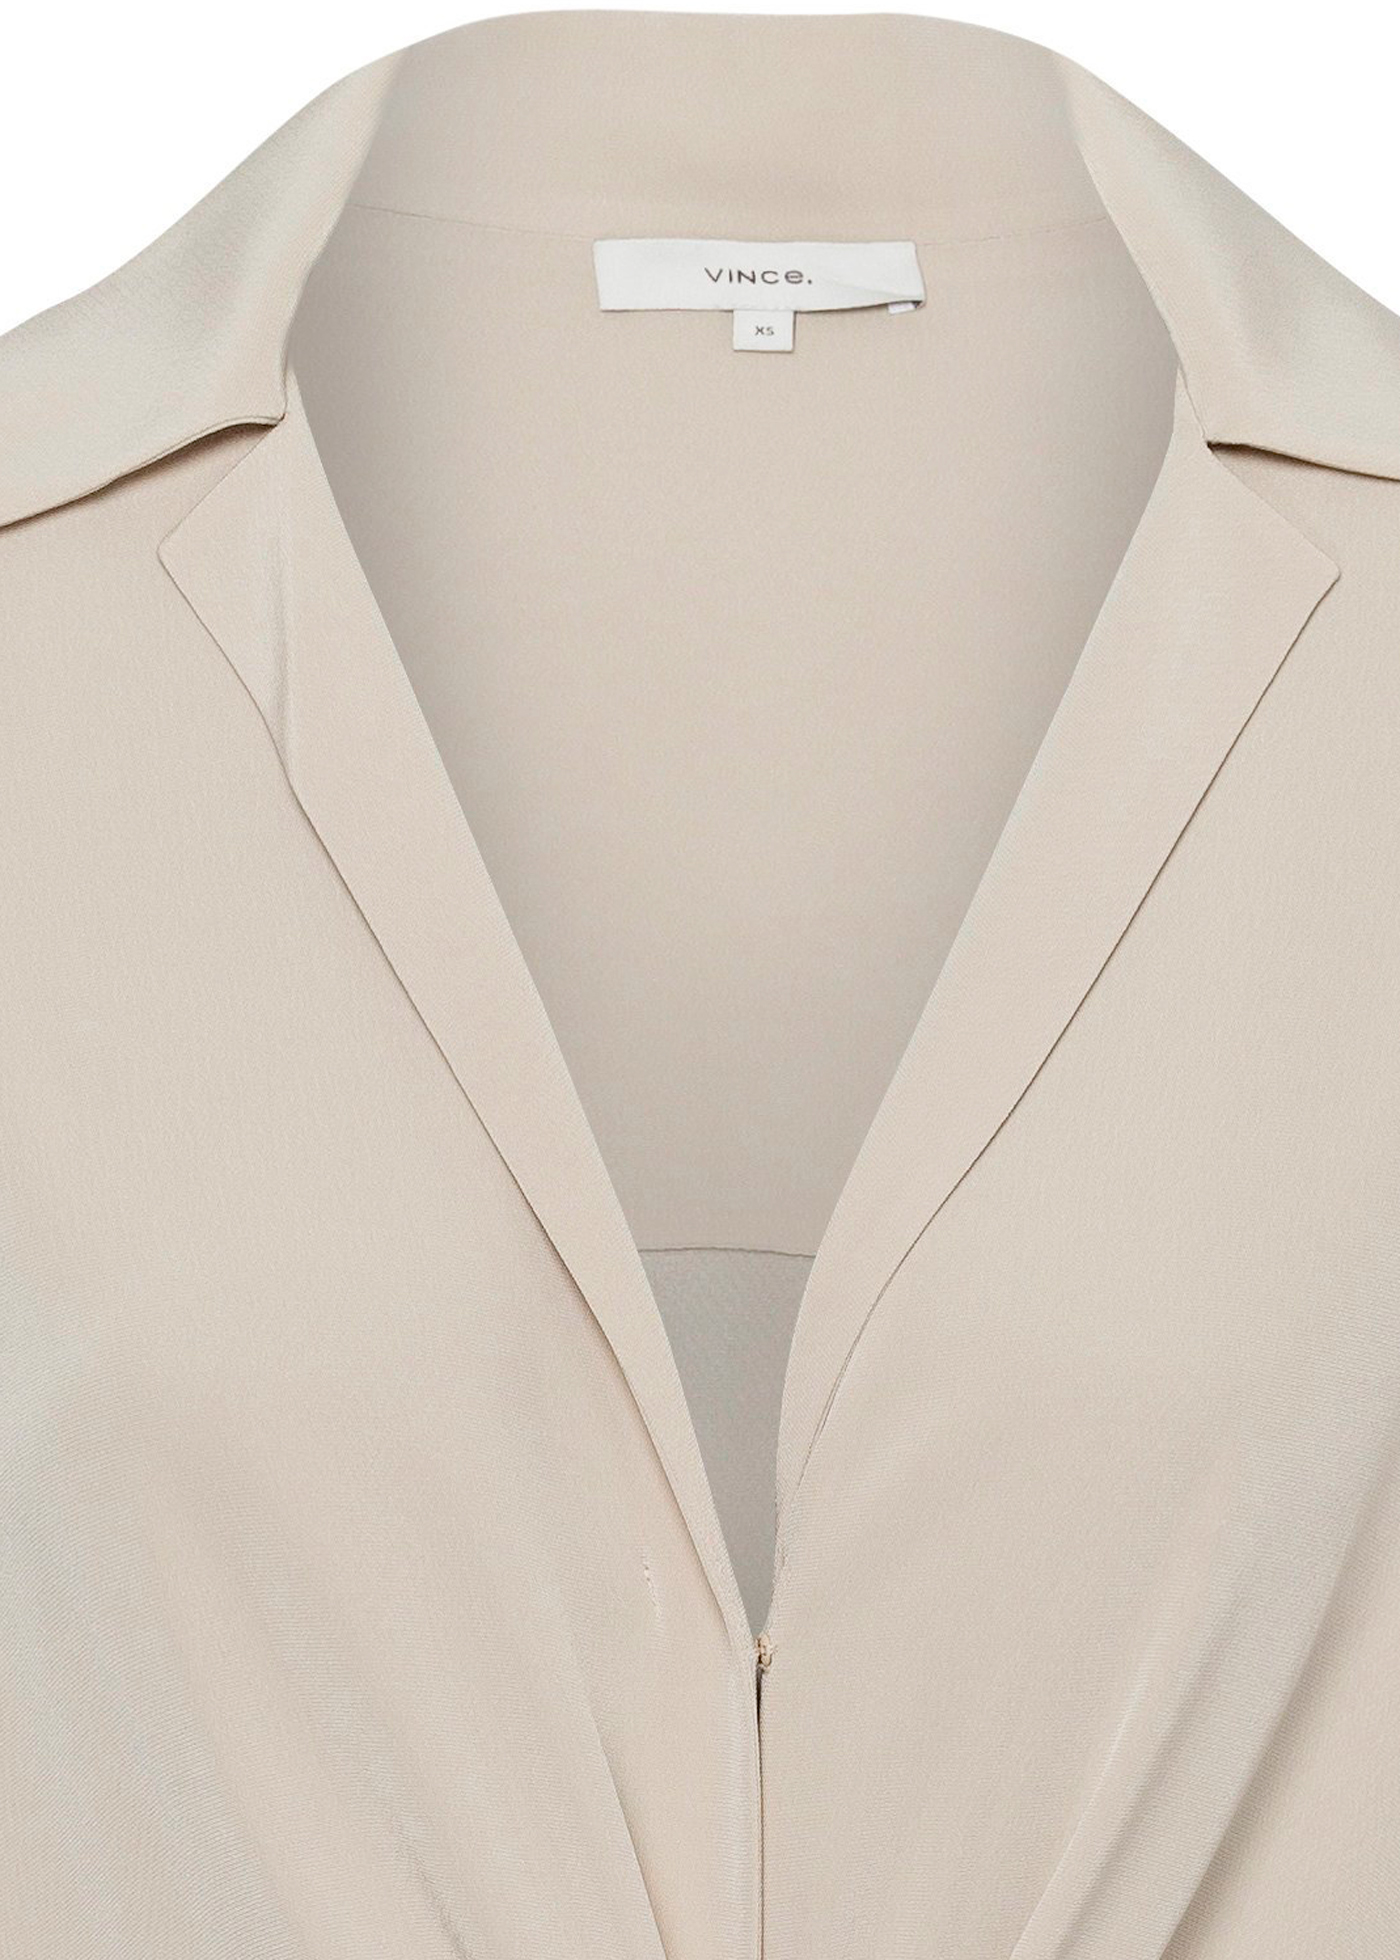 L/S SHAPED COLLAR TIE FRONT DRESS / L/S SHAPED COLLAR TIE FR image number 2